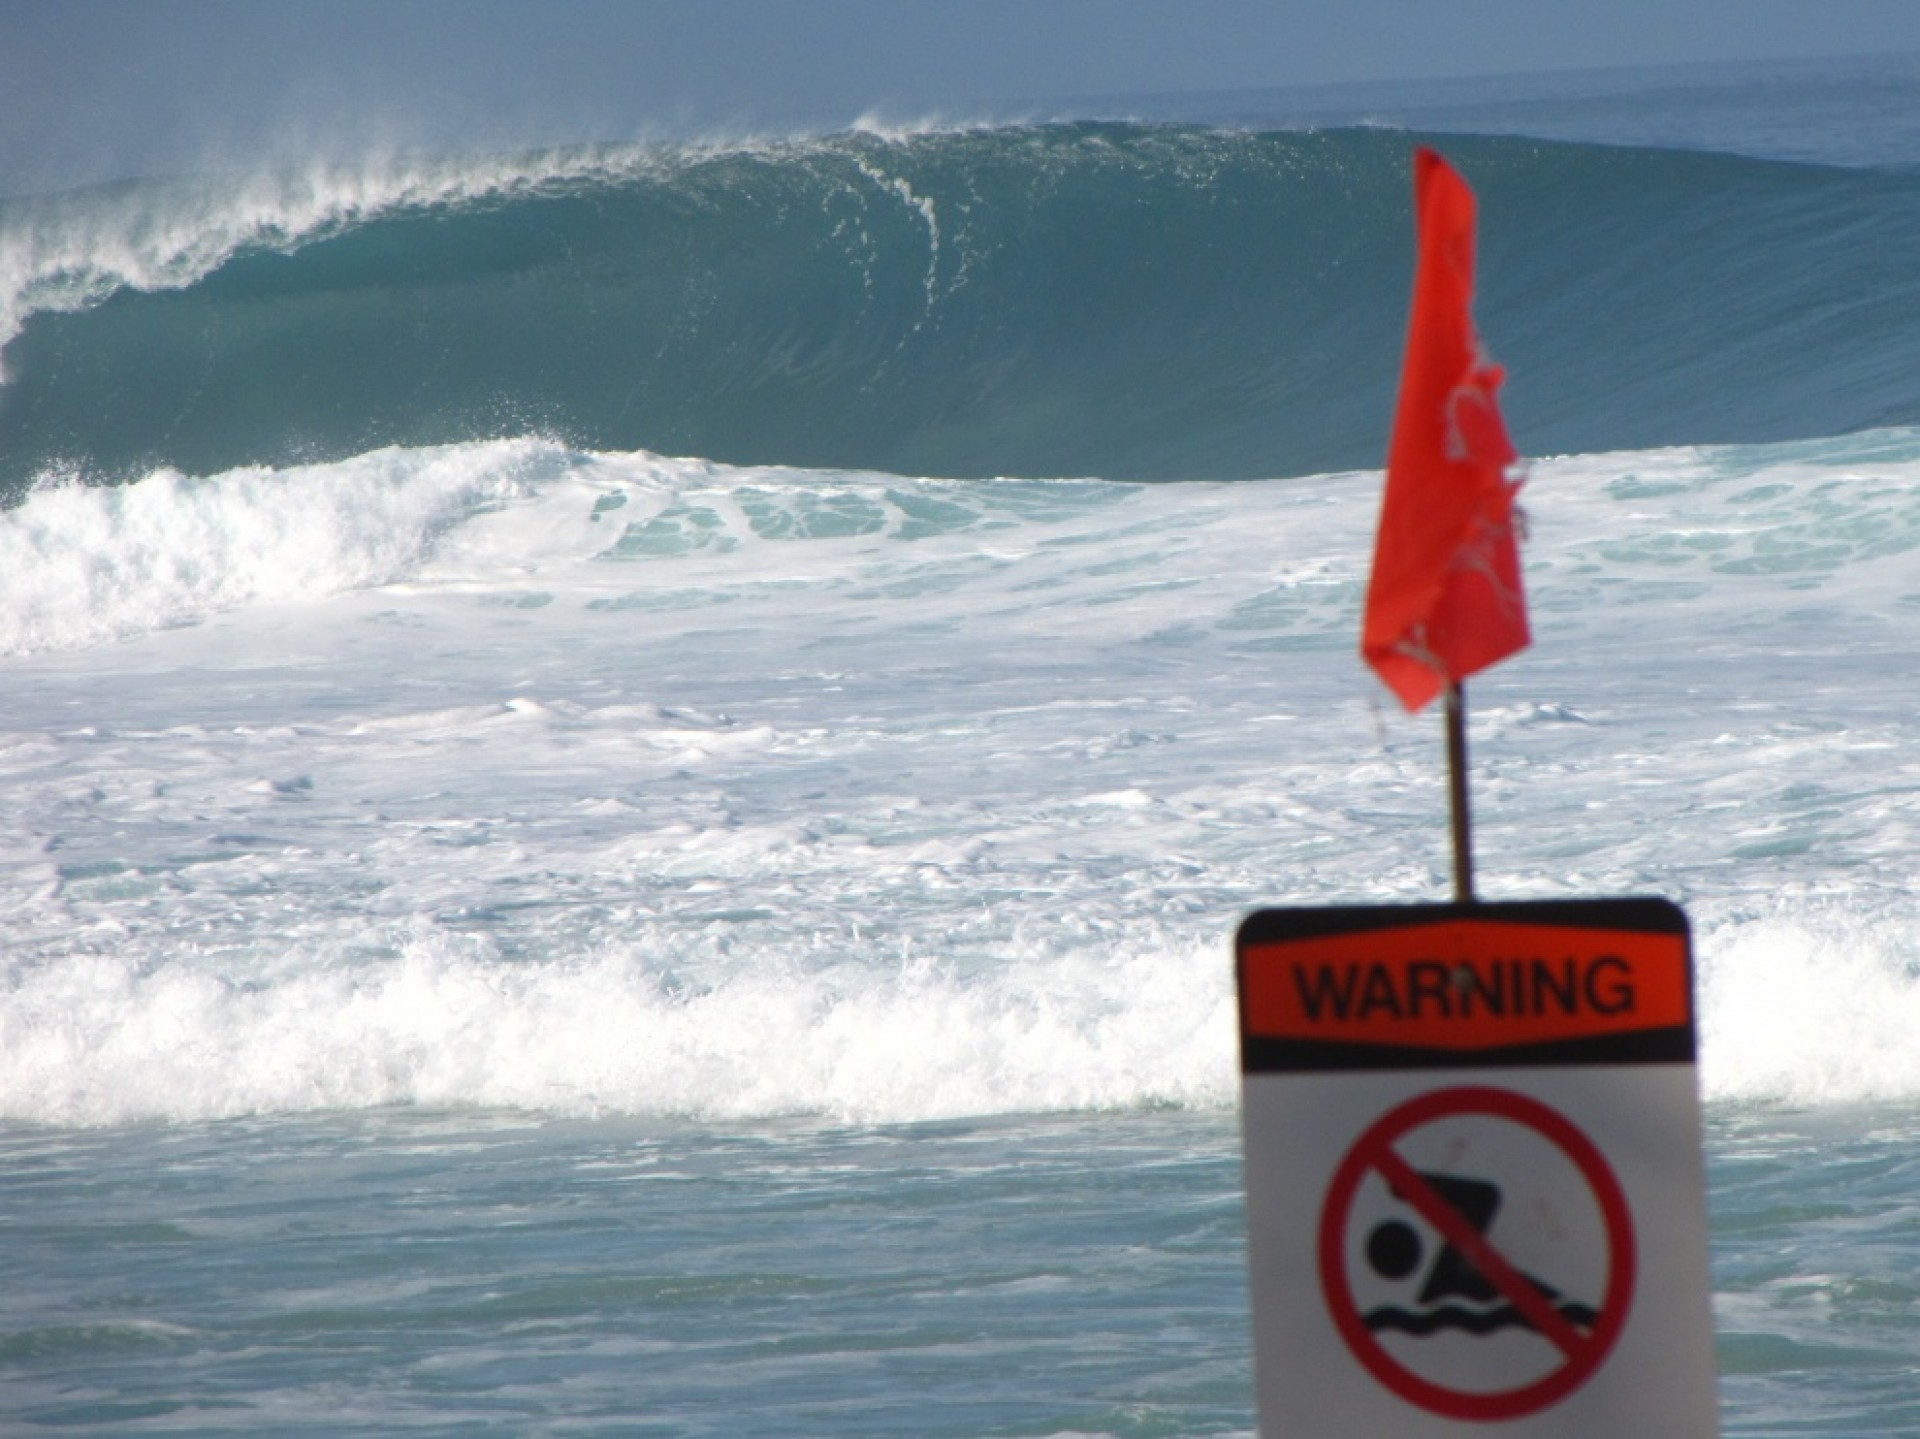 kettie's photo of Pipeline & Backdoor